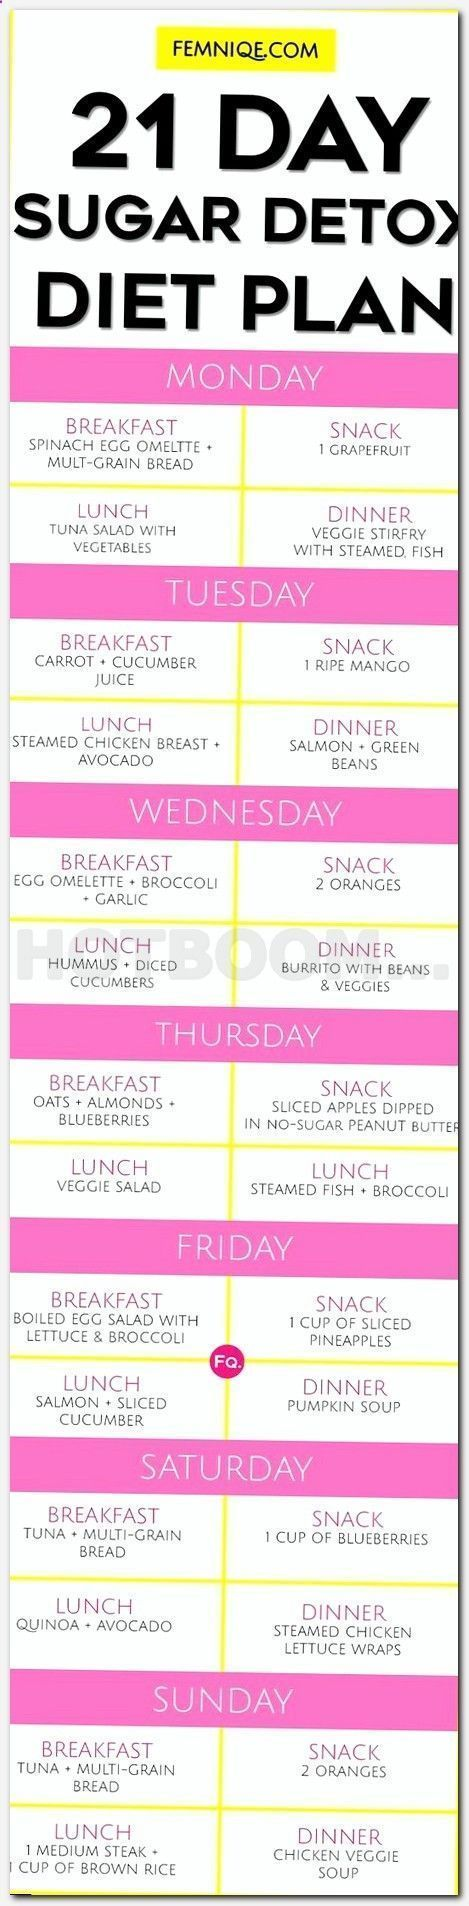 Best 25 diet chart ideas on pinterest weight charts for women vegan vegetable recipes easy ways of eating healthy type blood o diet chart of height and weight how to lose weight in 3 weeks without exercise nvjuhfo Images